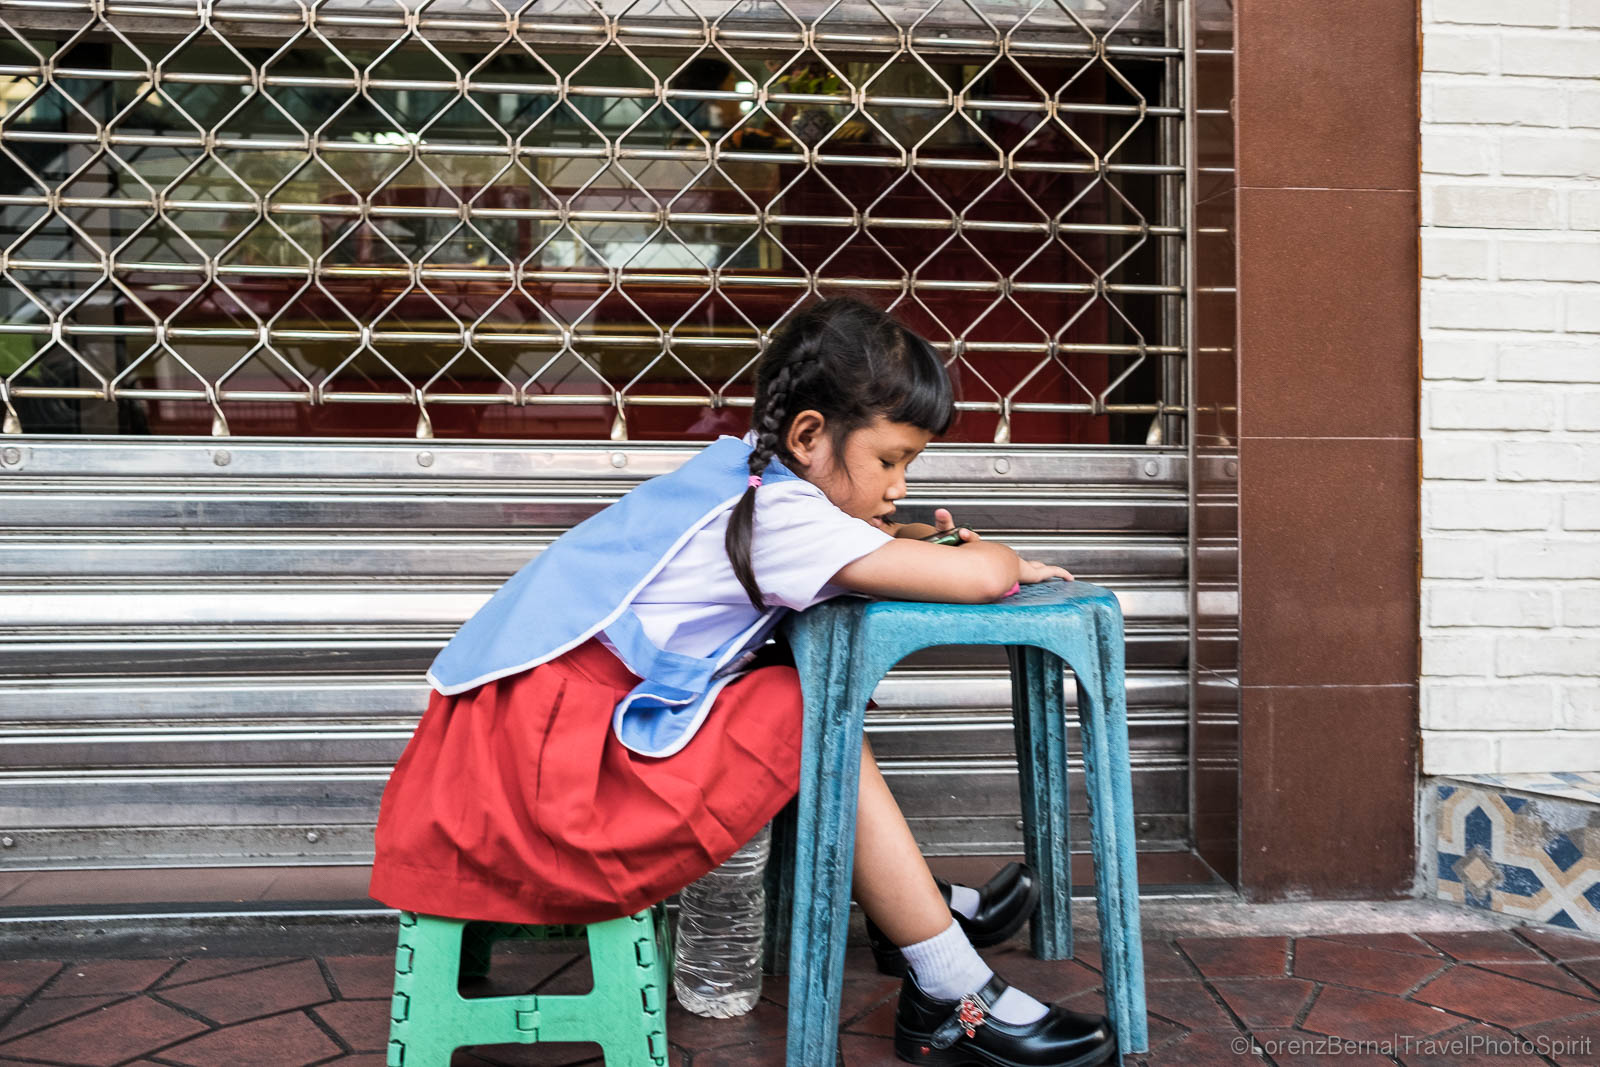 Homework time in Bangkok streets.